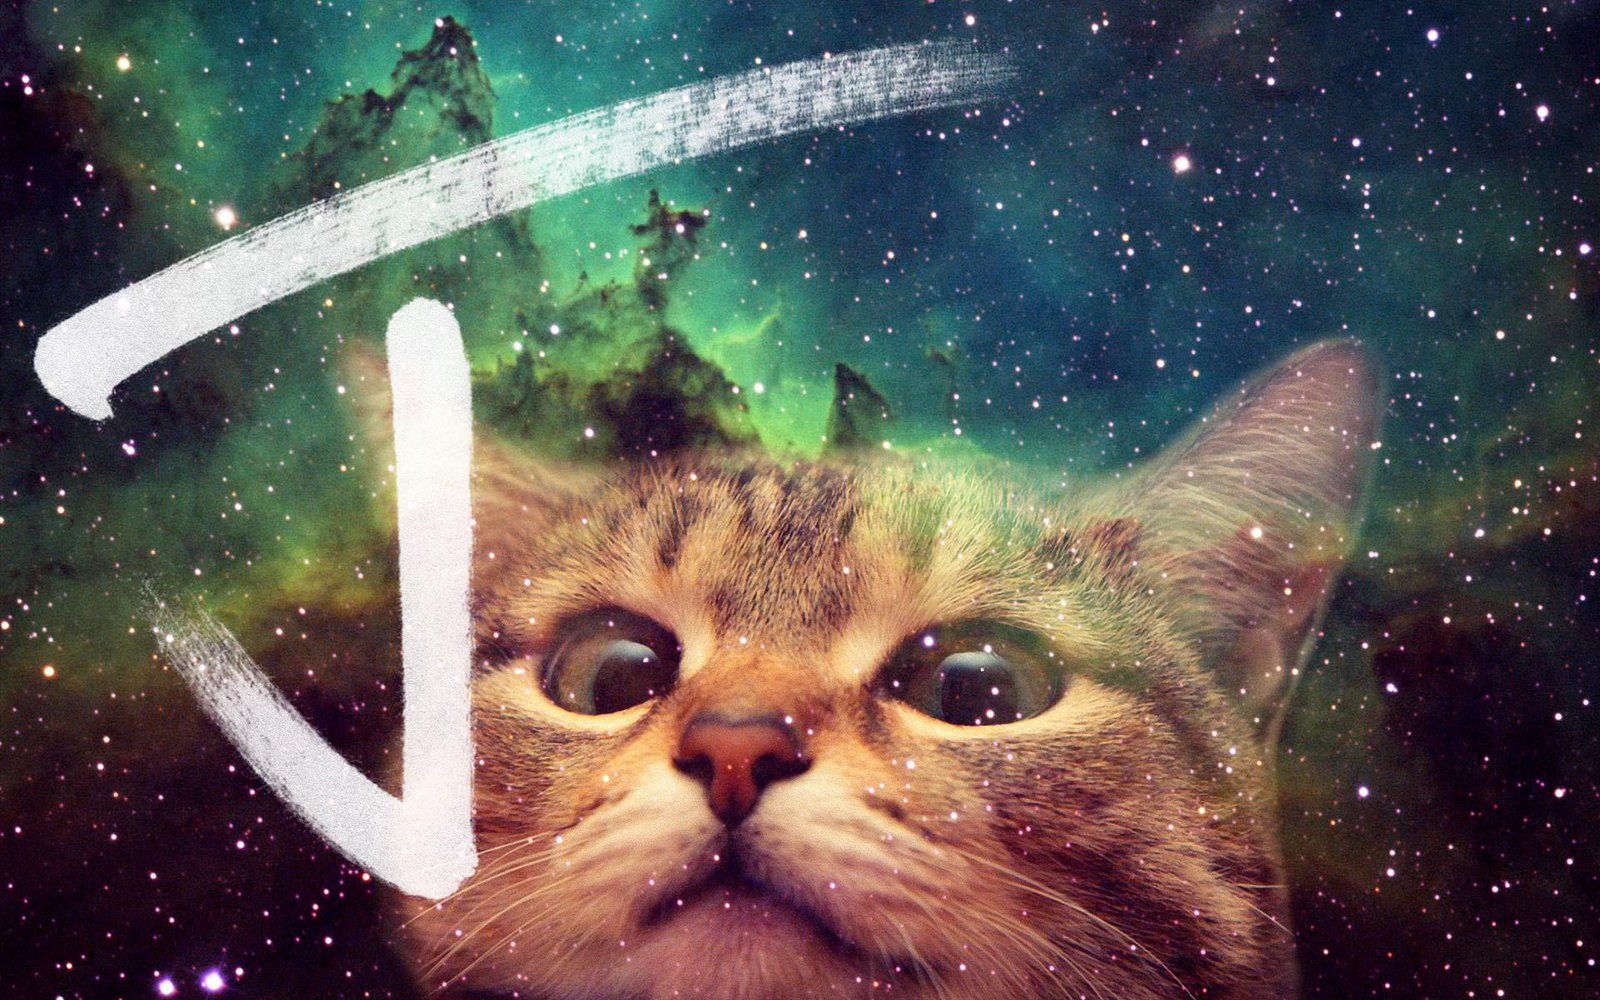 I CAN HAS CATS IN SPACE SKI!